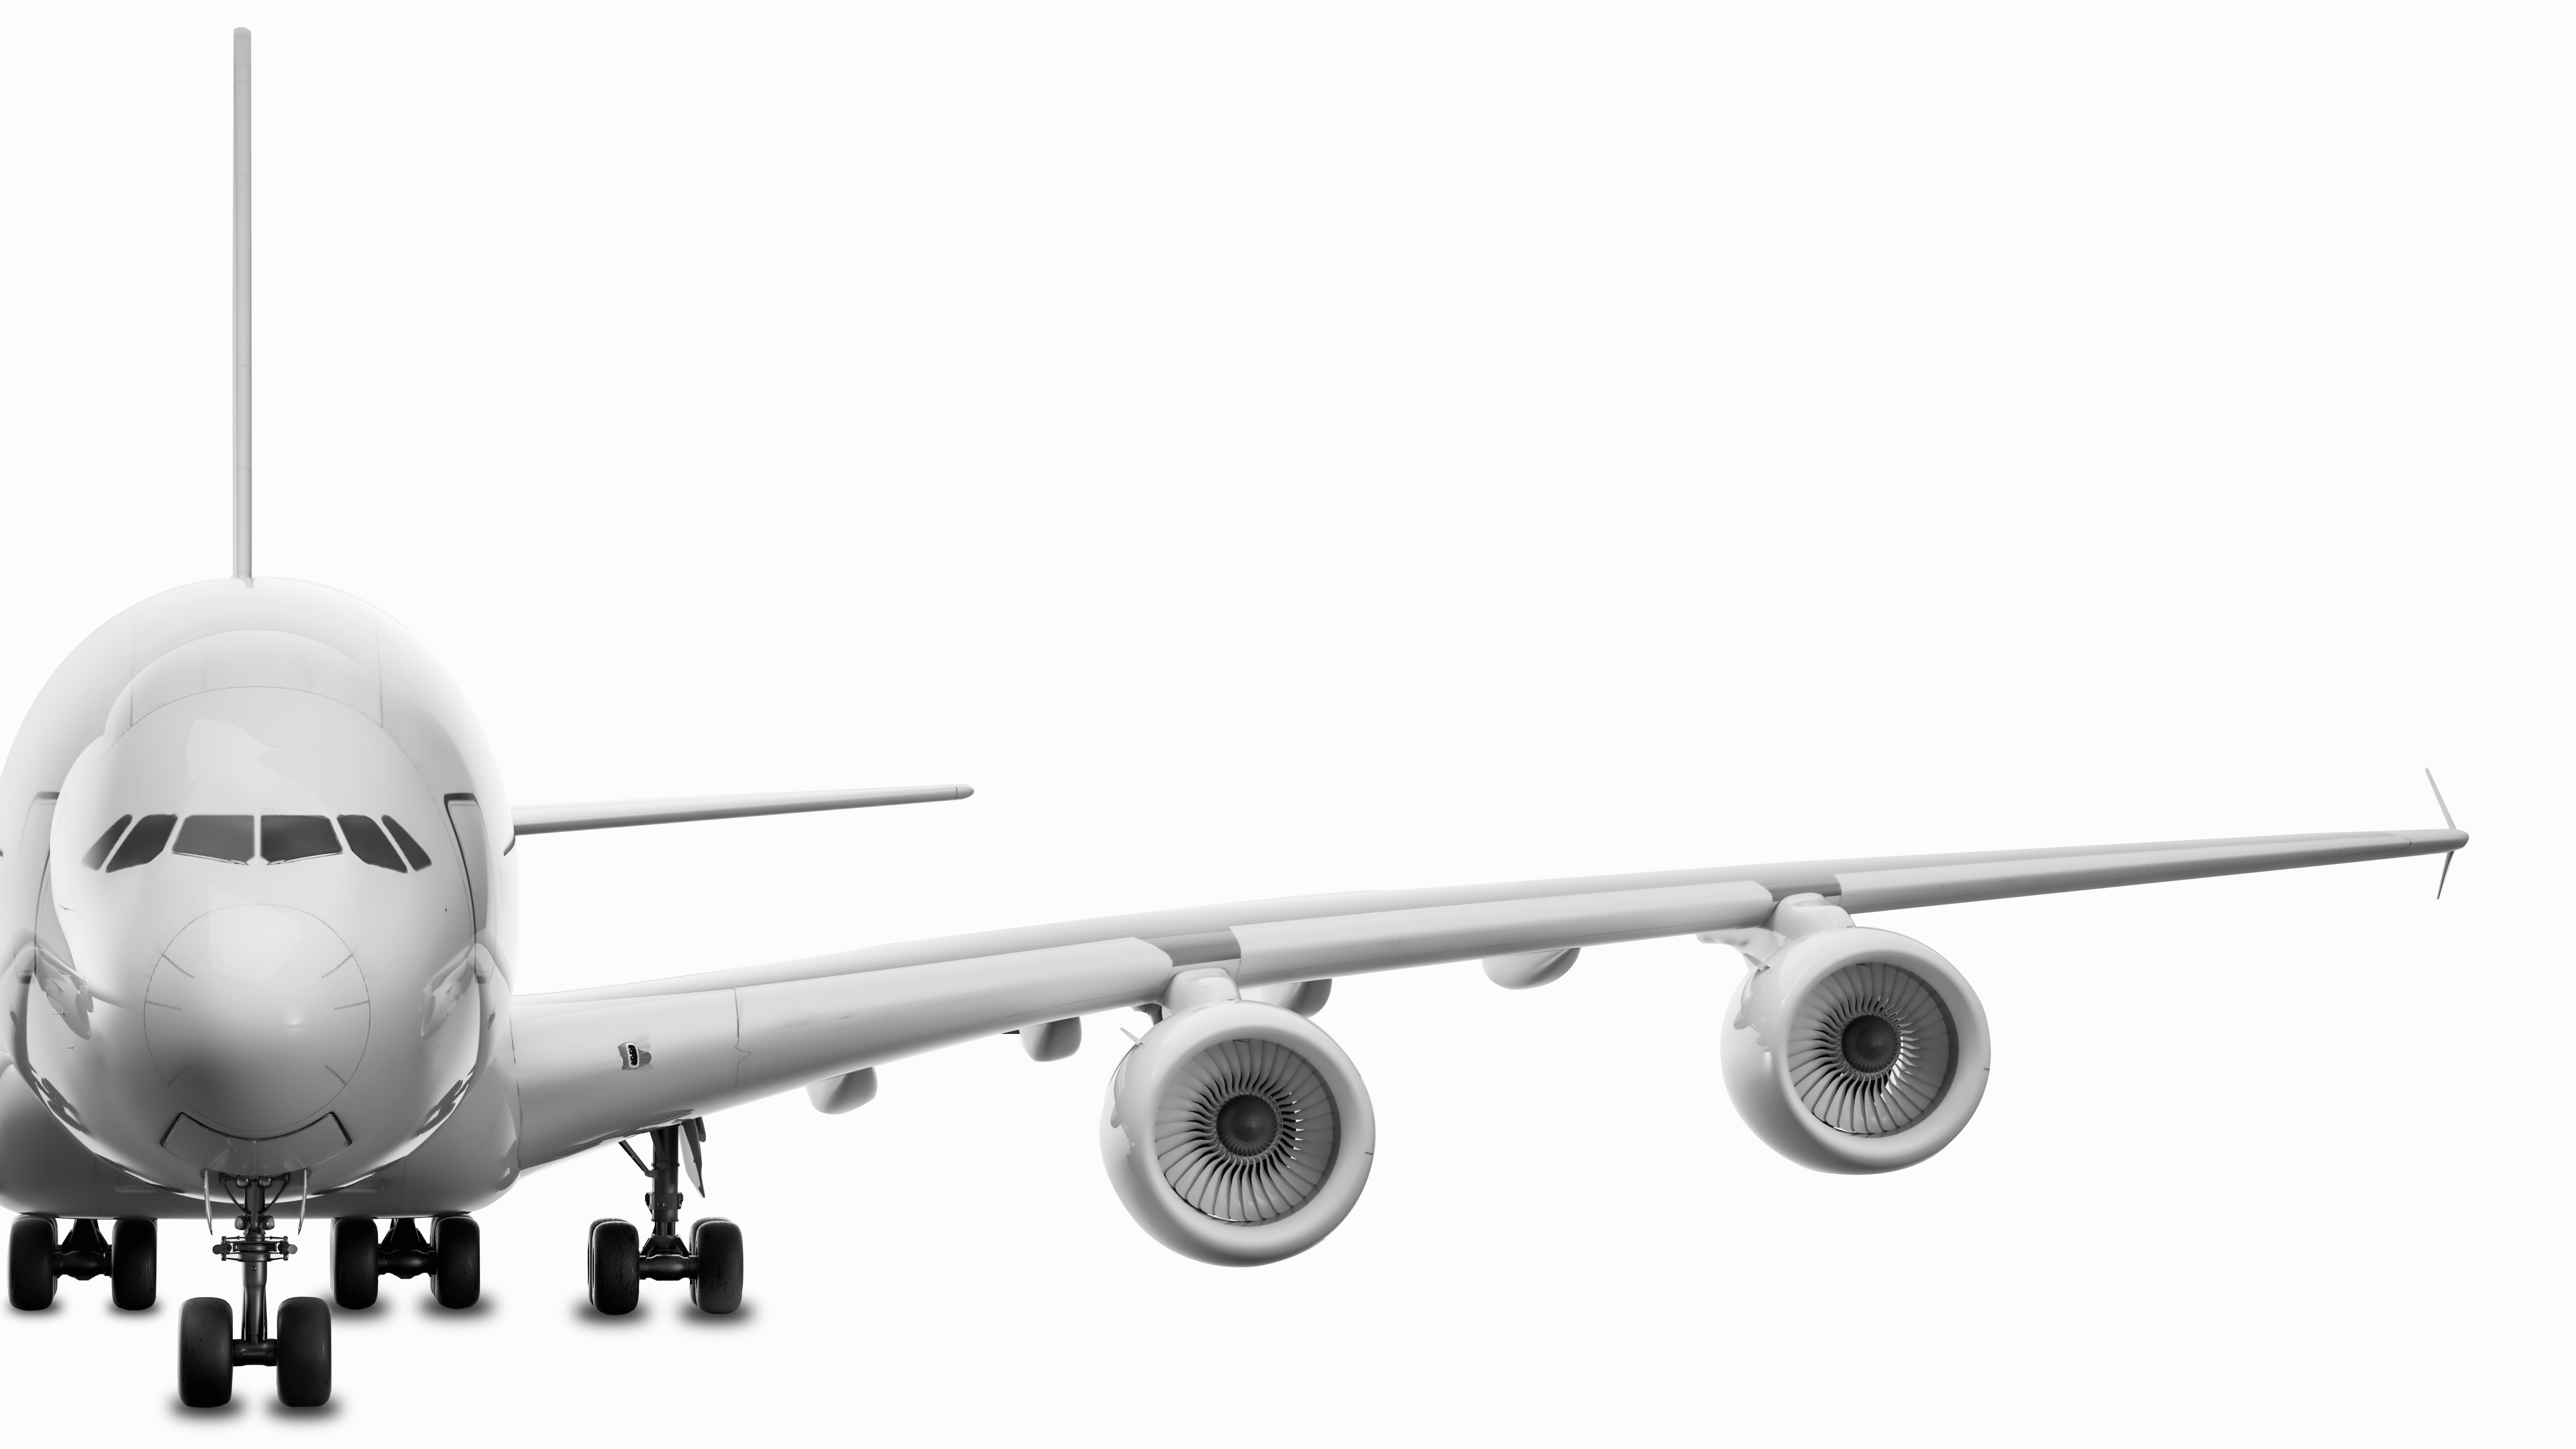 Customs Clearance for Air Freight shipments